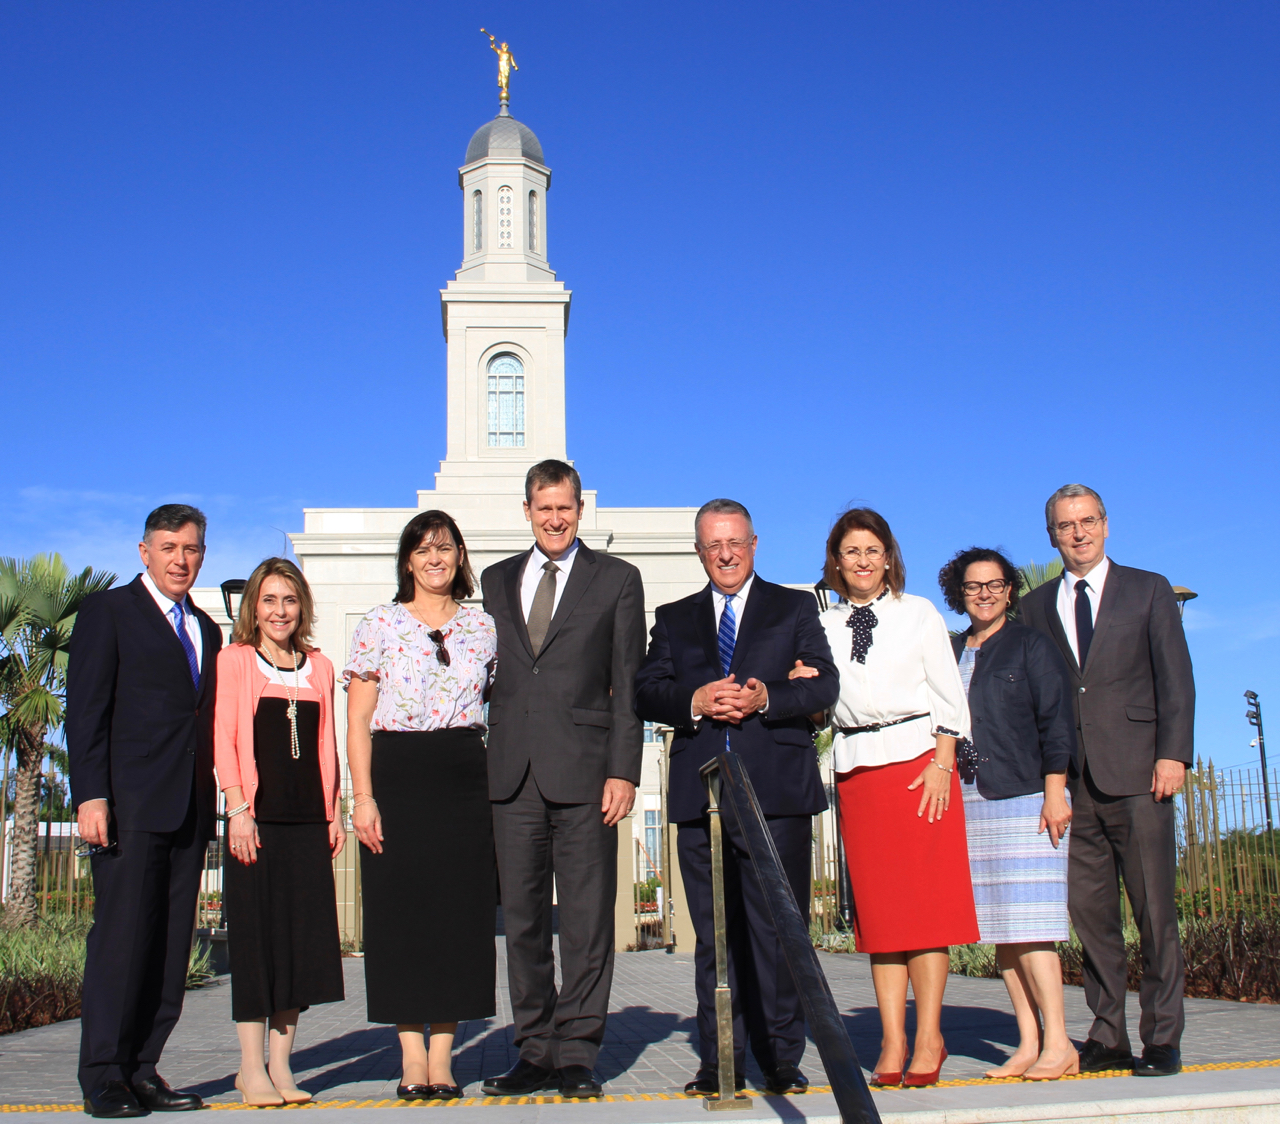 Church general authorities and their wives stand pause in front of the Fortaleza Brazil Temple on Saturday afternoon, June 1, 2019, a day before the temple's dedication. From left, Elder Adilson de Paula Parrella, a General Authority Seventy and counselor in Brazil Area; Sister Elaine Parrella; Sister Luisa Aidukaitis; Elder Marcos A. Aidukaitis, a General Authority Seventy and president of the Brazil Area; Elder Ulisses S. Soares of the Quorum of the Twelve Apostles; Sister Rosana Soares; Sister Mônica Godoy and Elder Carlos A. Godoy of the Presidency of the Seventy.